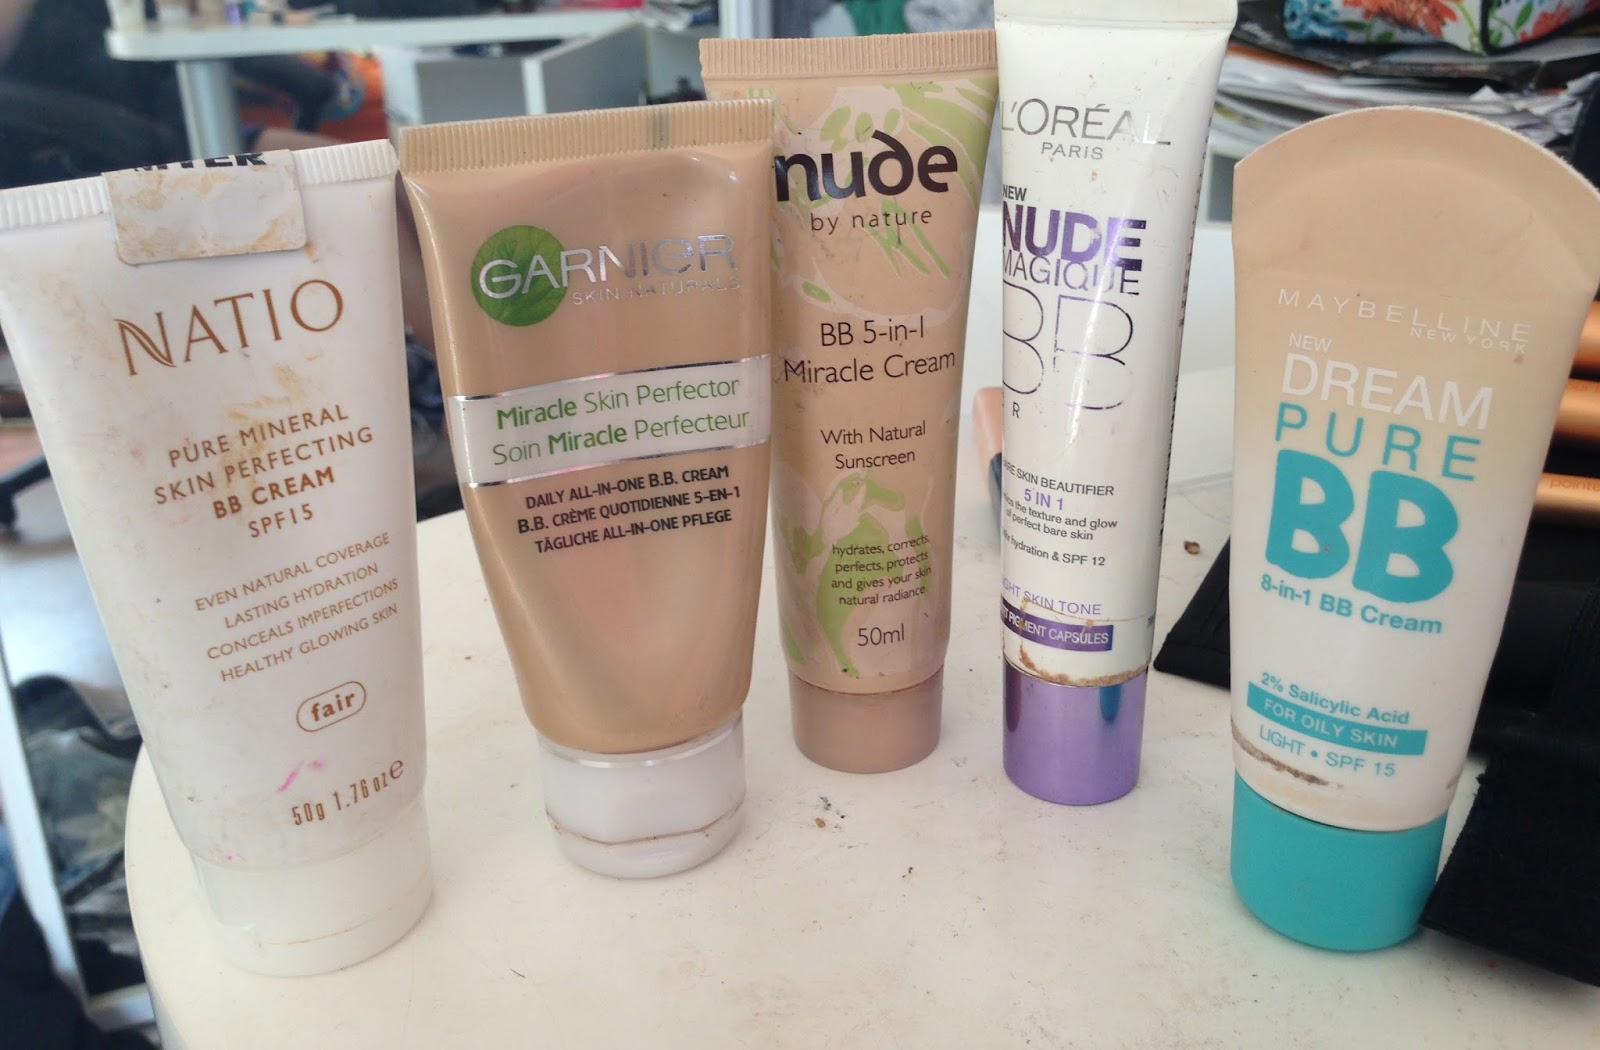 Nude By Nature Sheer Glow BB Cream   MYER